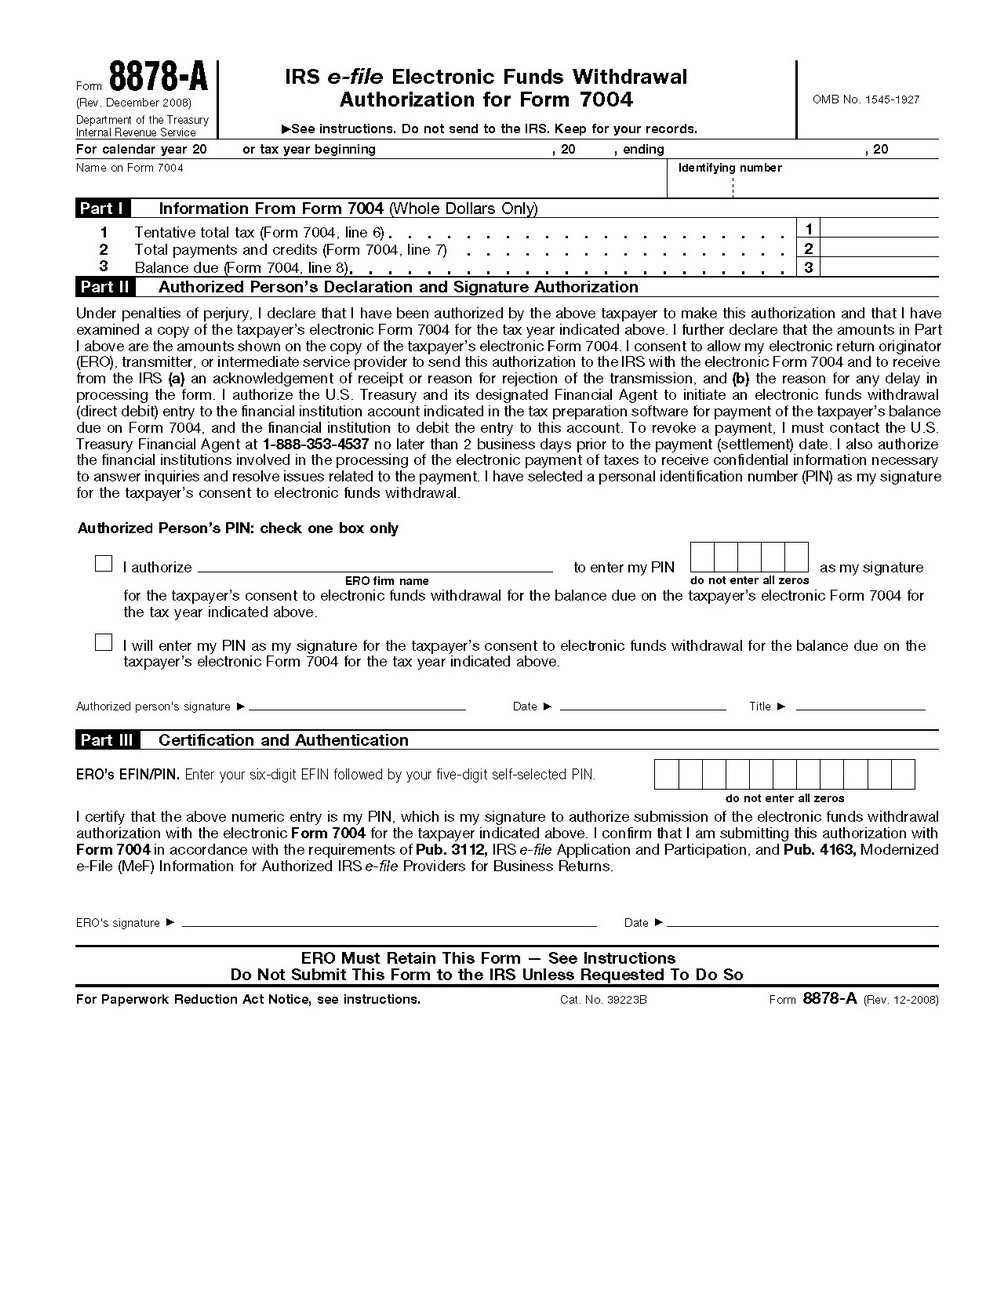 Irs Form 2290 Where To Mail